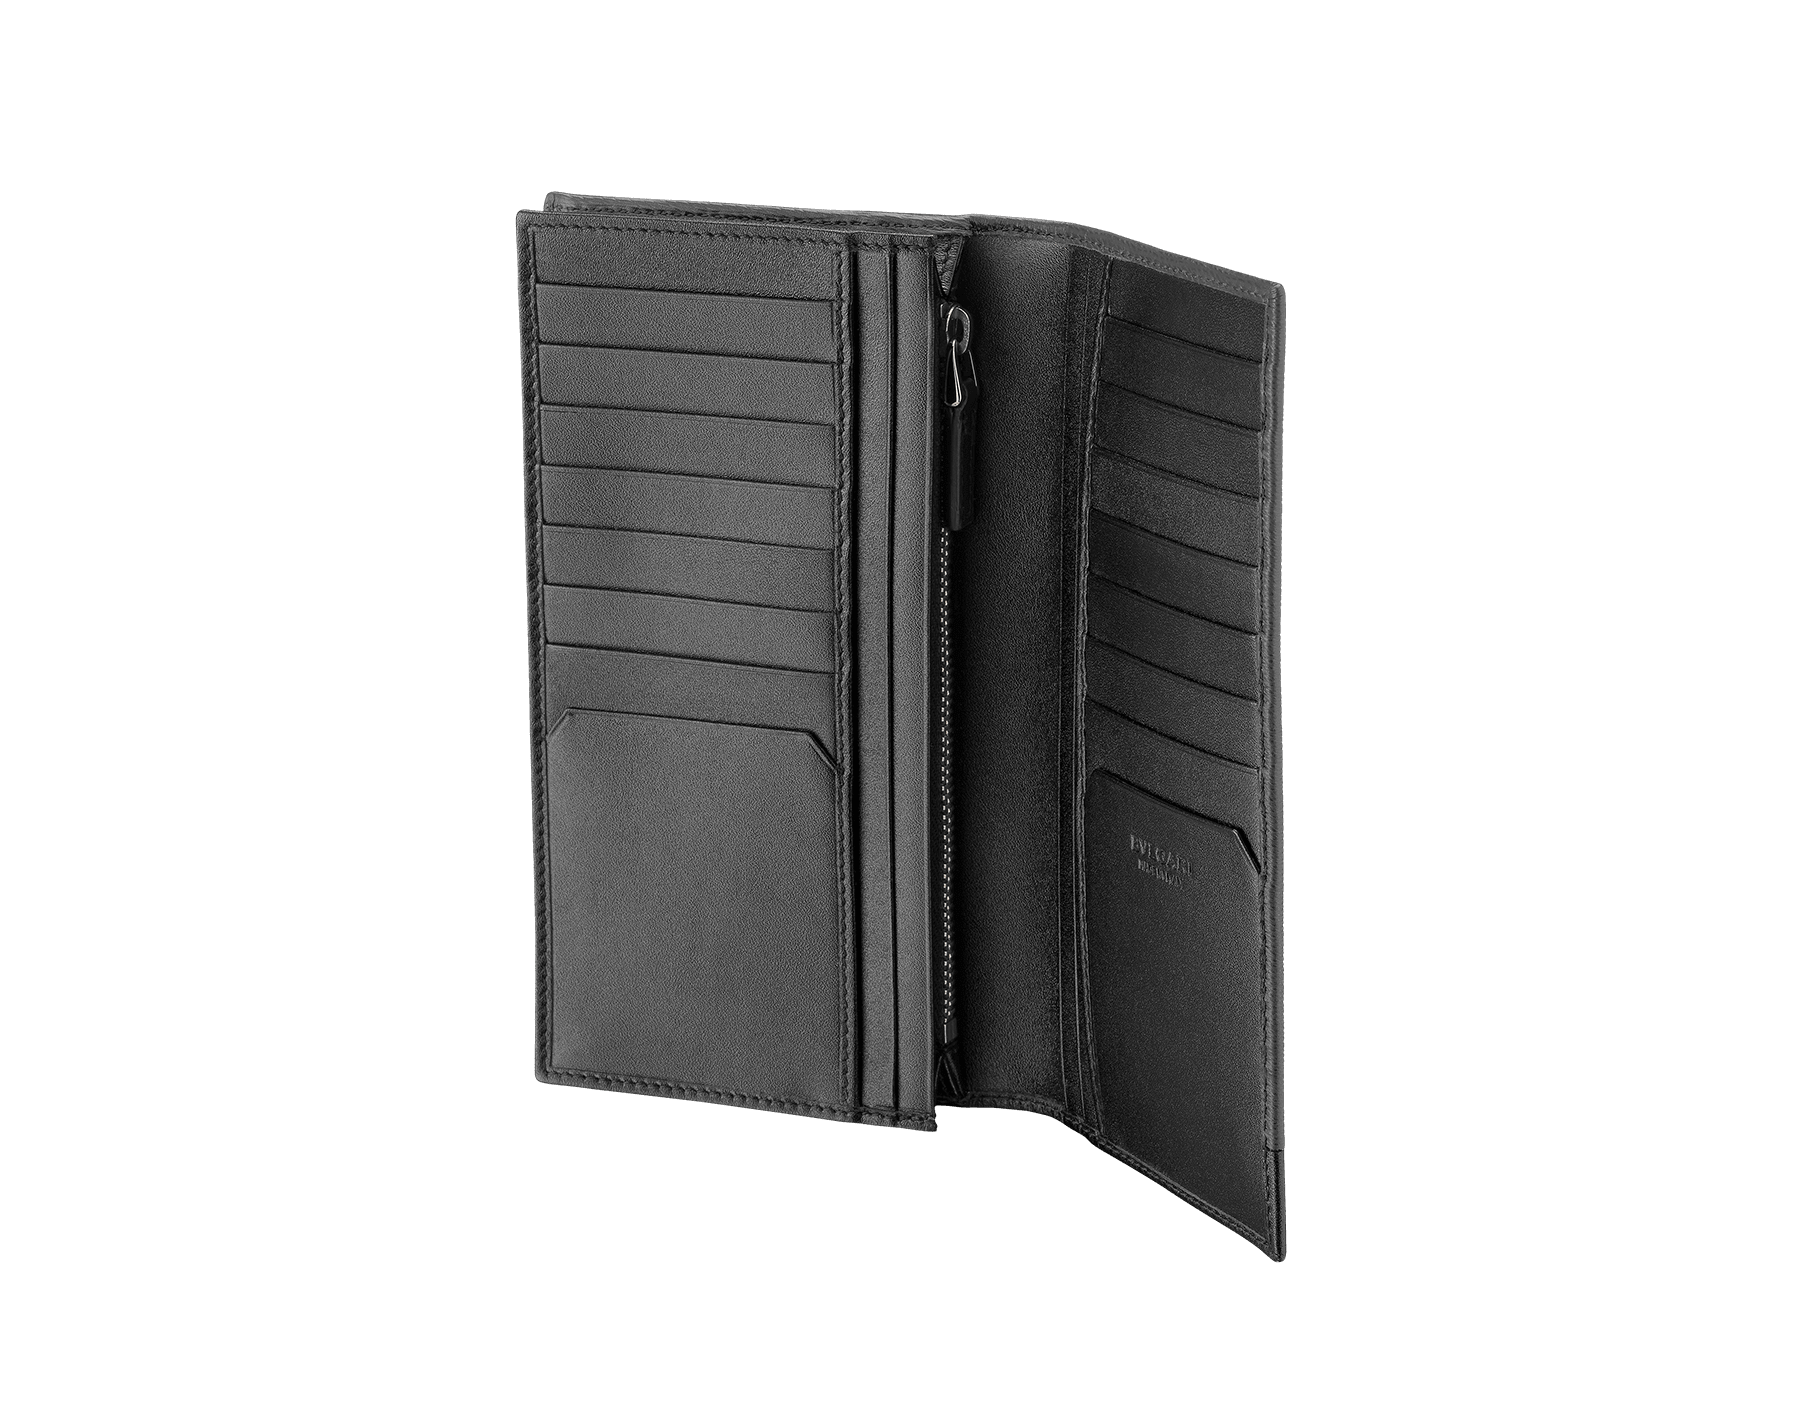 Serpenti Scaglie men's large wallet in mimetic jade grazed calf leather and black calf leather. Bvlgari logo engraved on the hexagonal scaglie metal plate finished in dark ruthenium. 581-WLT-Y-ZP-16C image 2